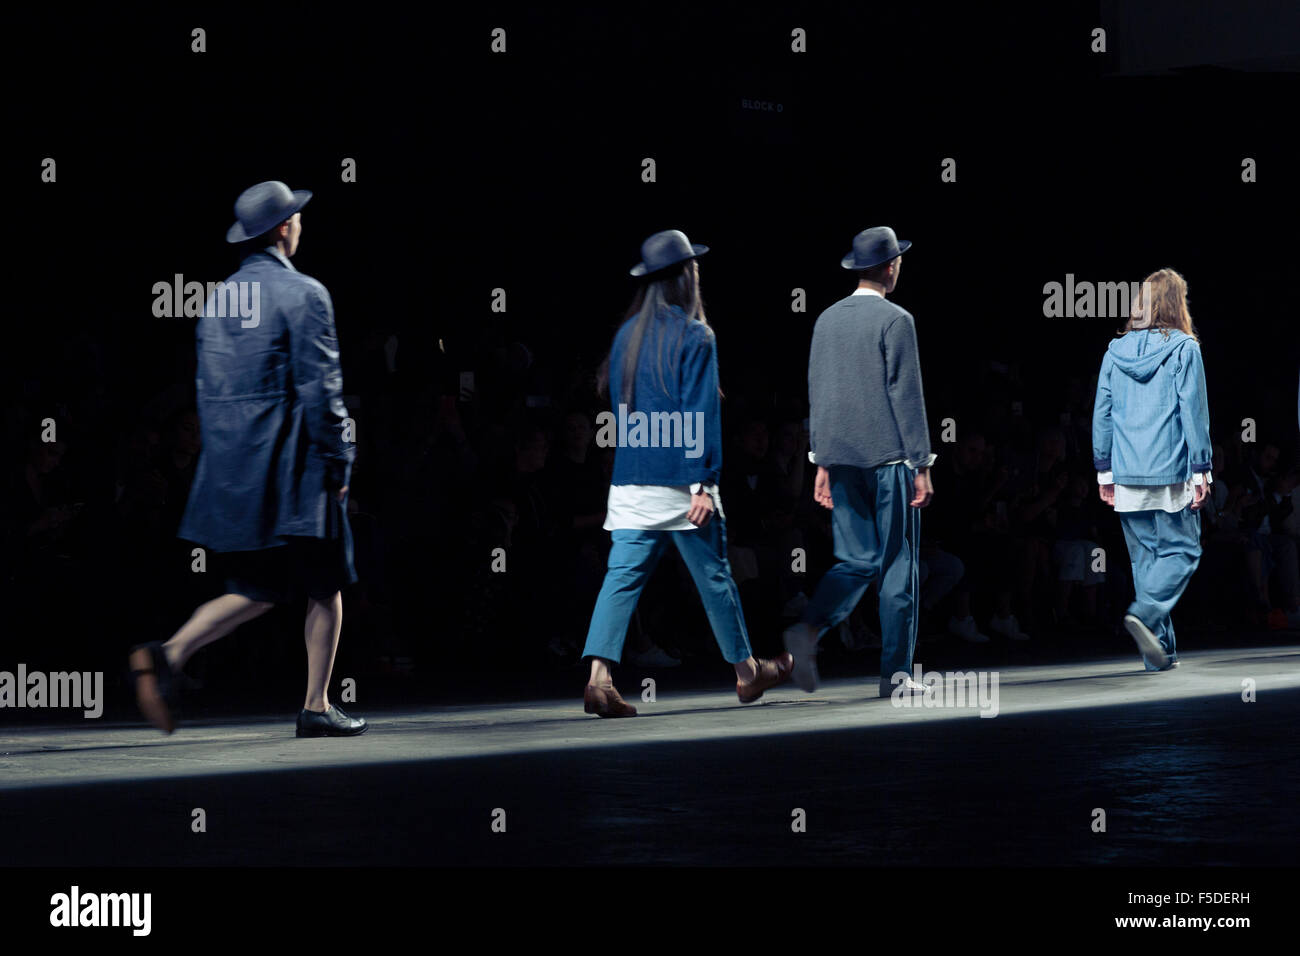 Male models walking towards the camera at London fashion week or LCM - Stock Image